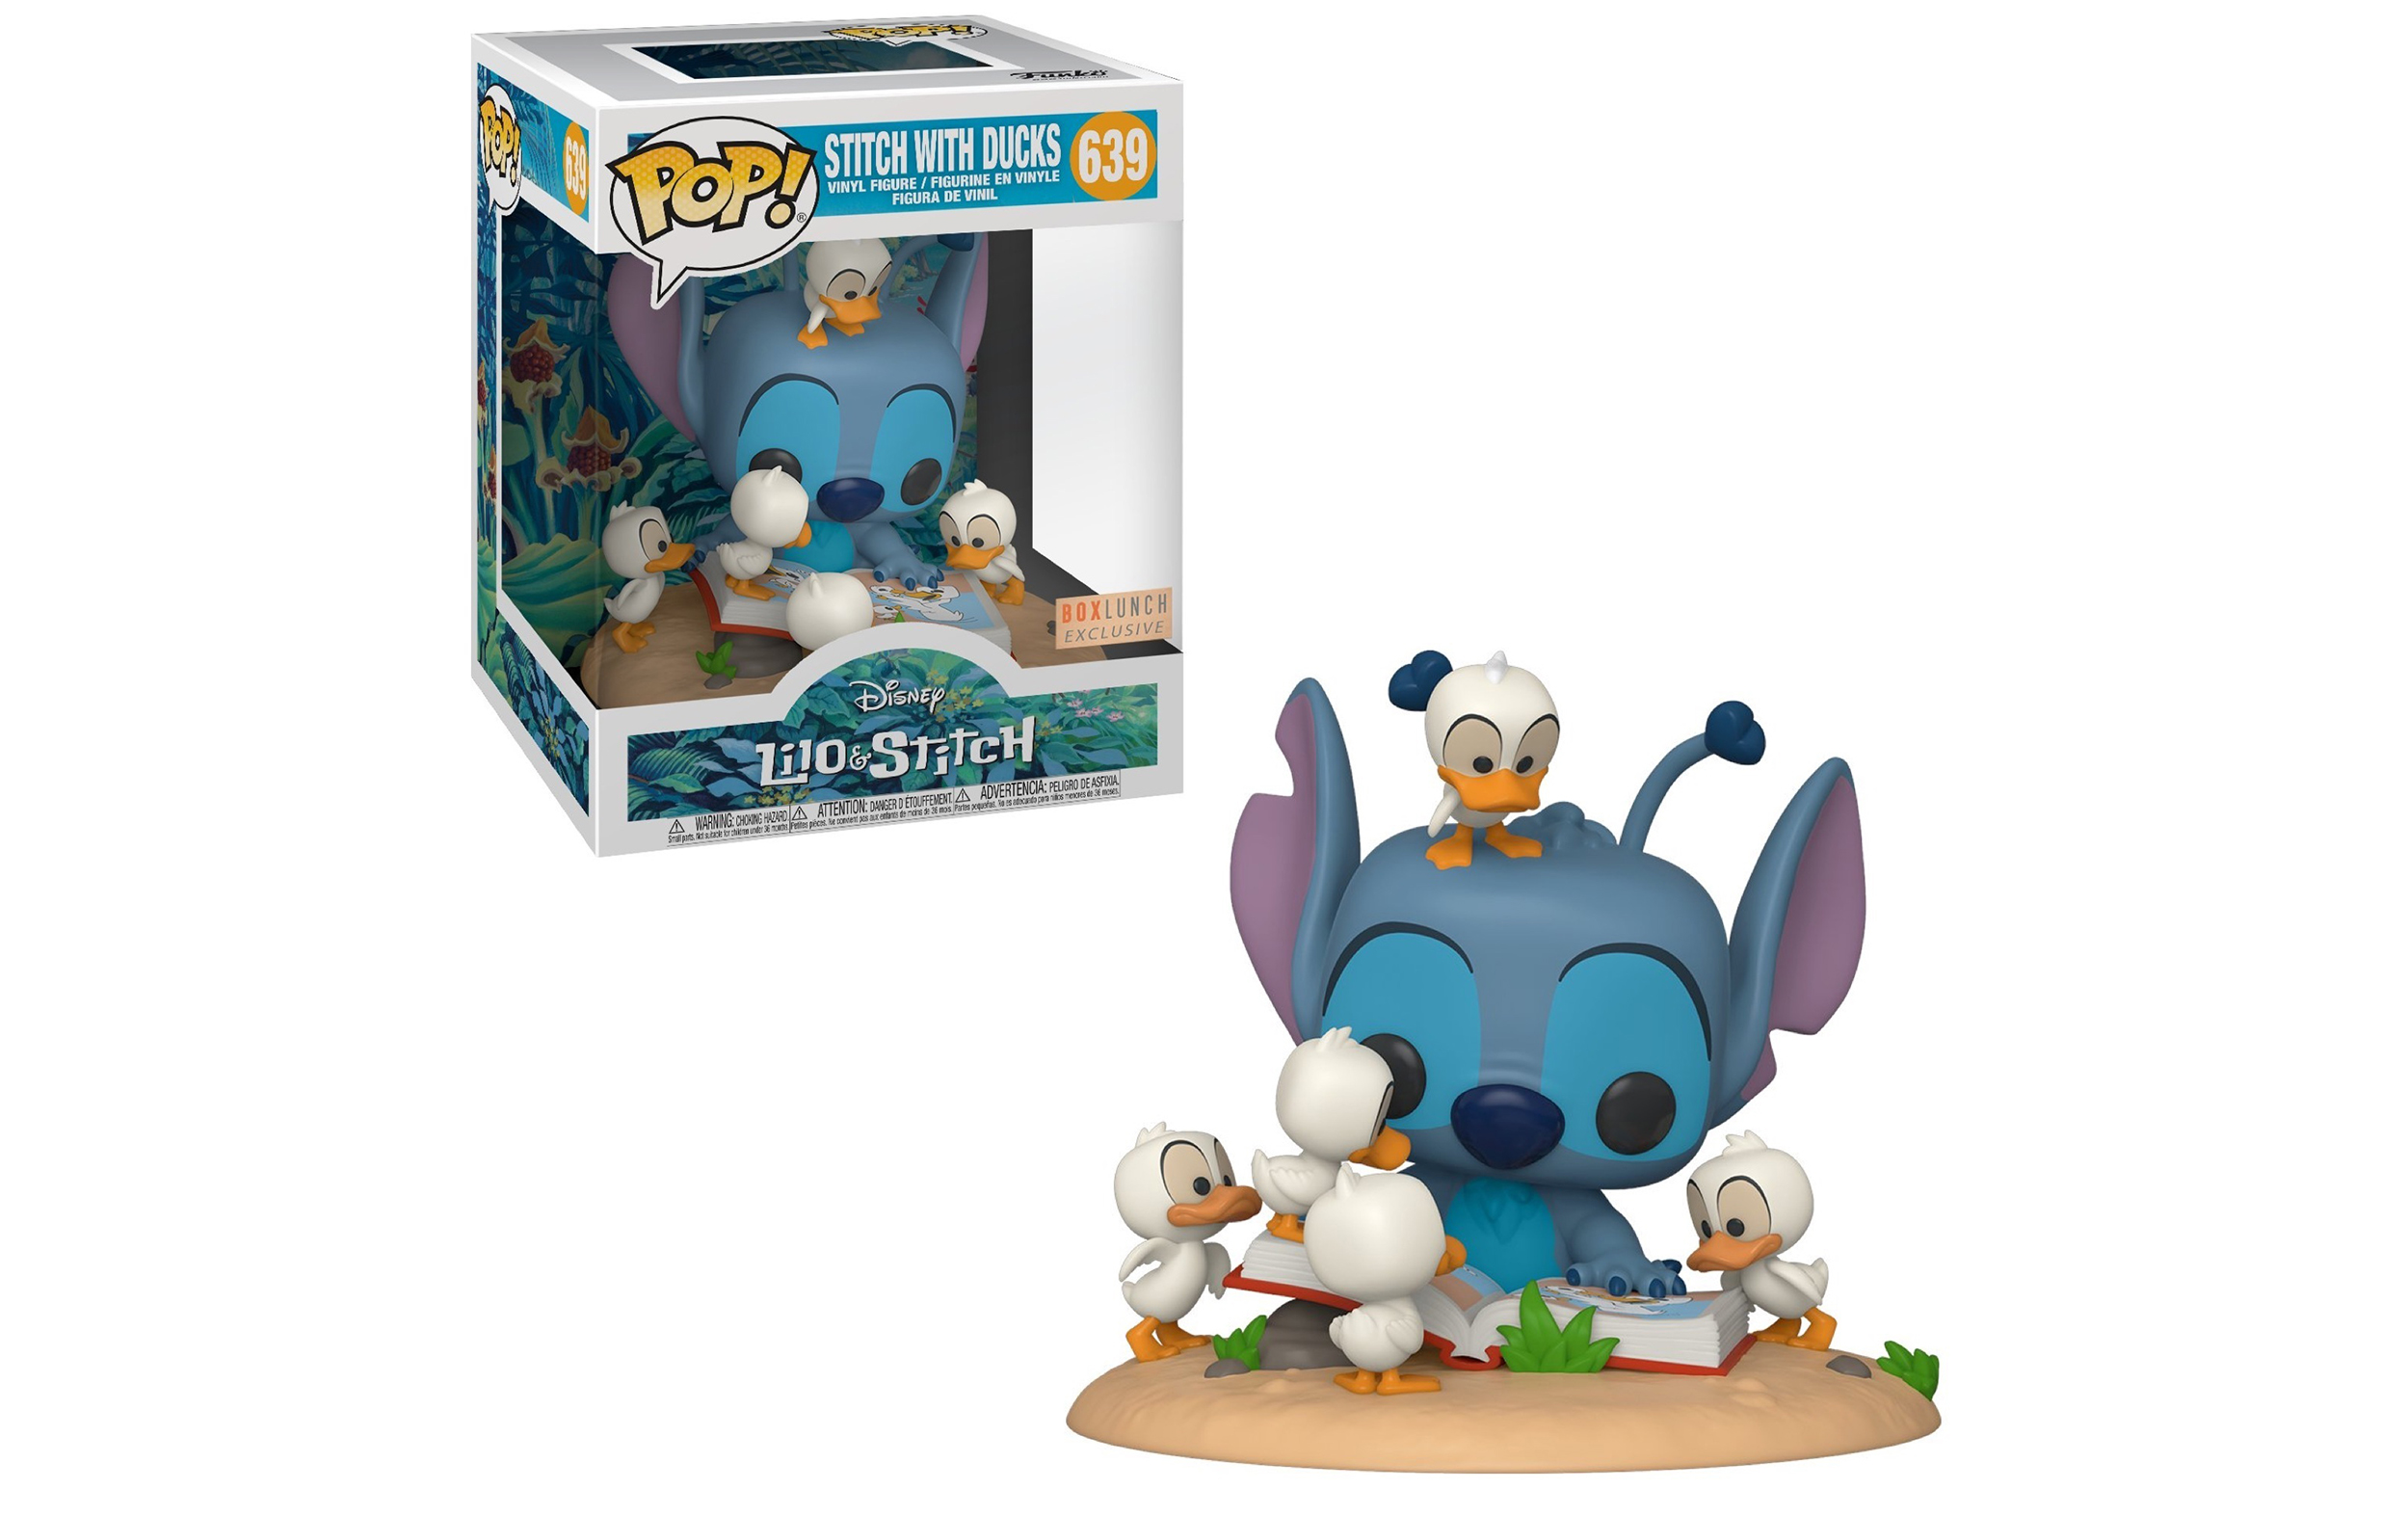 Disney Stitch with Ducks Boxlunch 639 Funko POP Vinyl Figure